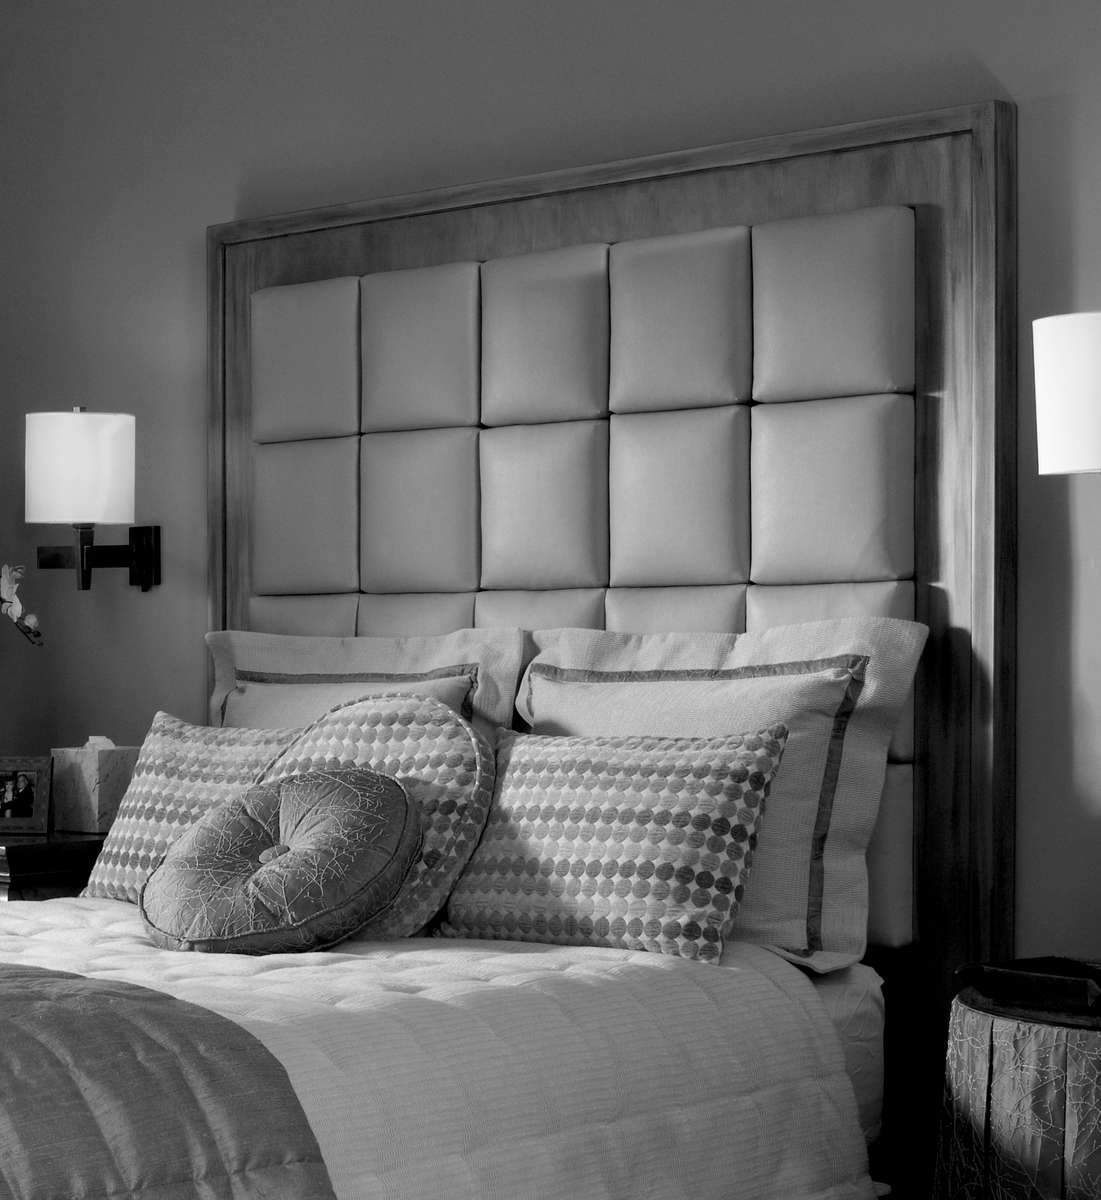 Headboard features custom wood finish frame and box pattern upholstery.* Fabric & wood finish may be substituted with customer's own preference.* Headboard frame also available in twin, full, queen, and king sizes.